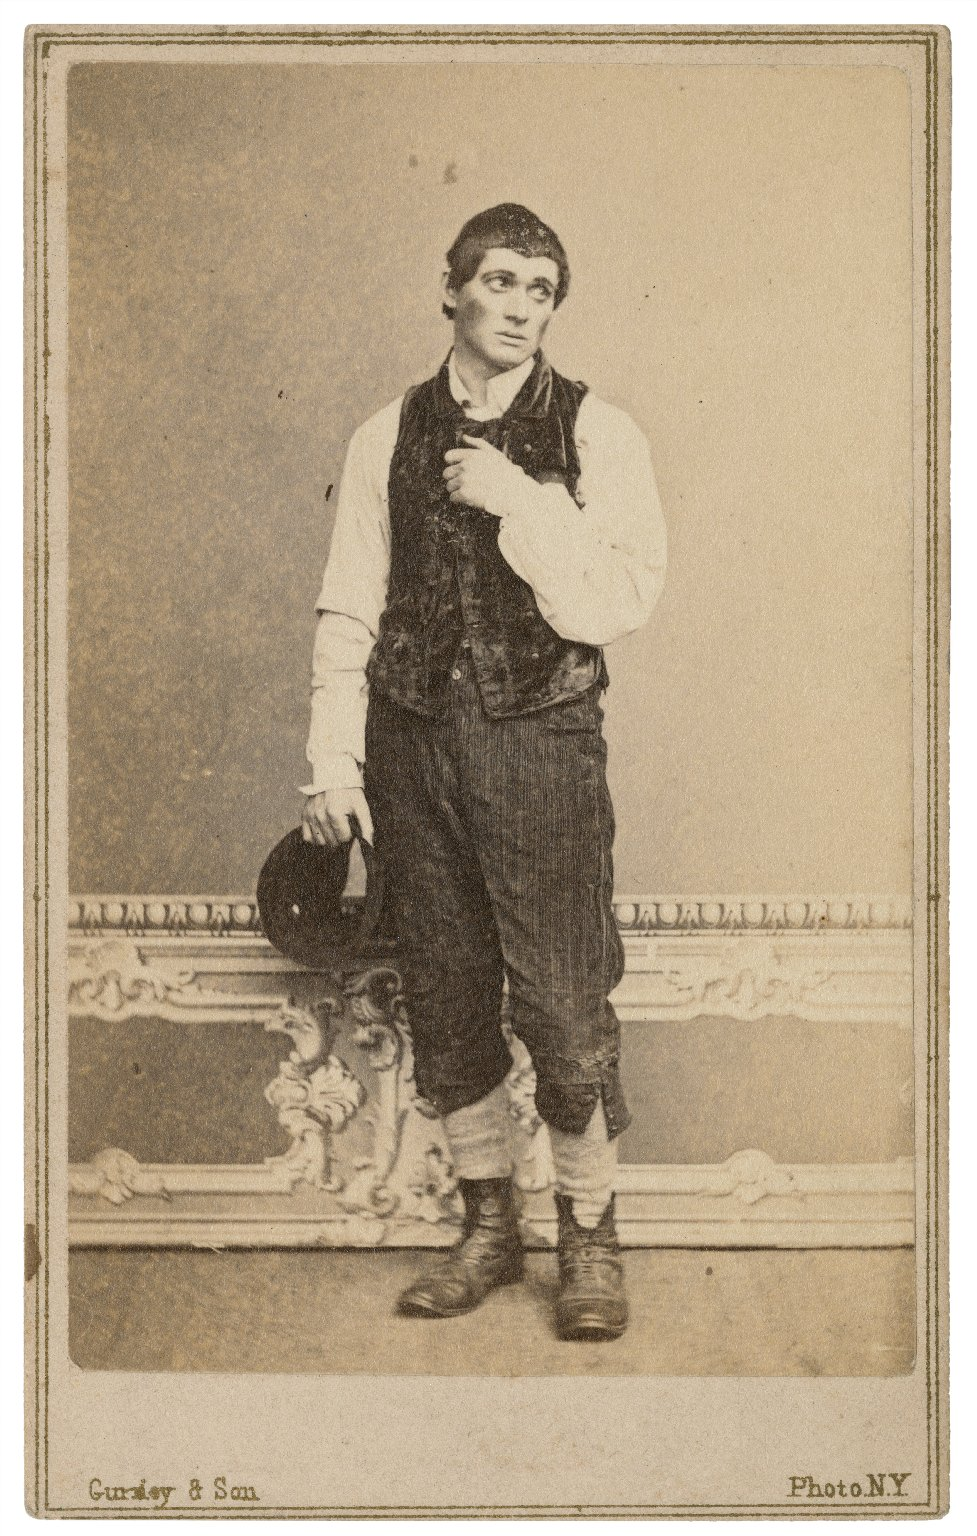 Geo. H. Gilbert [in theatrical costume] [graphic] / Gurney & Son, photo.